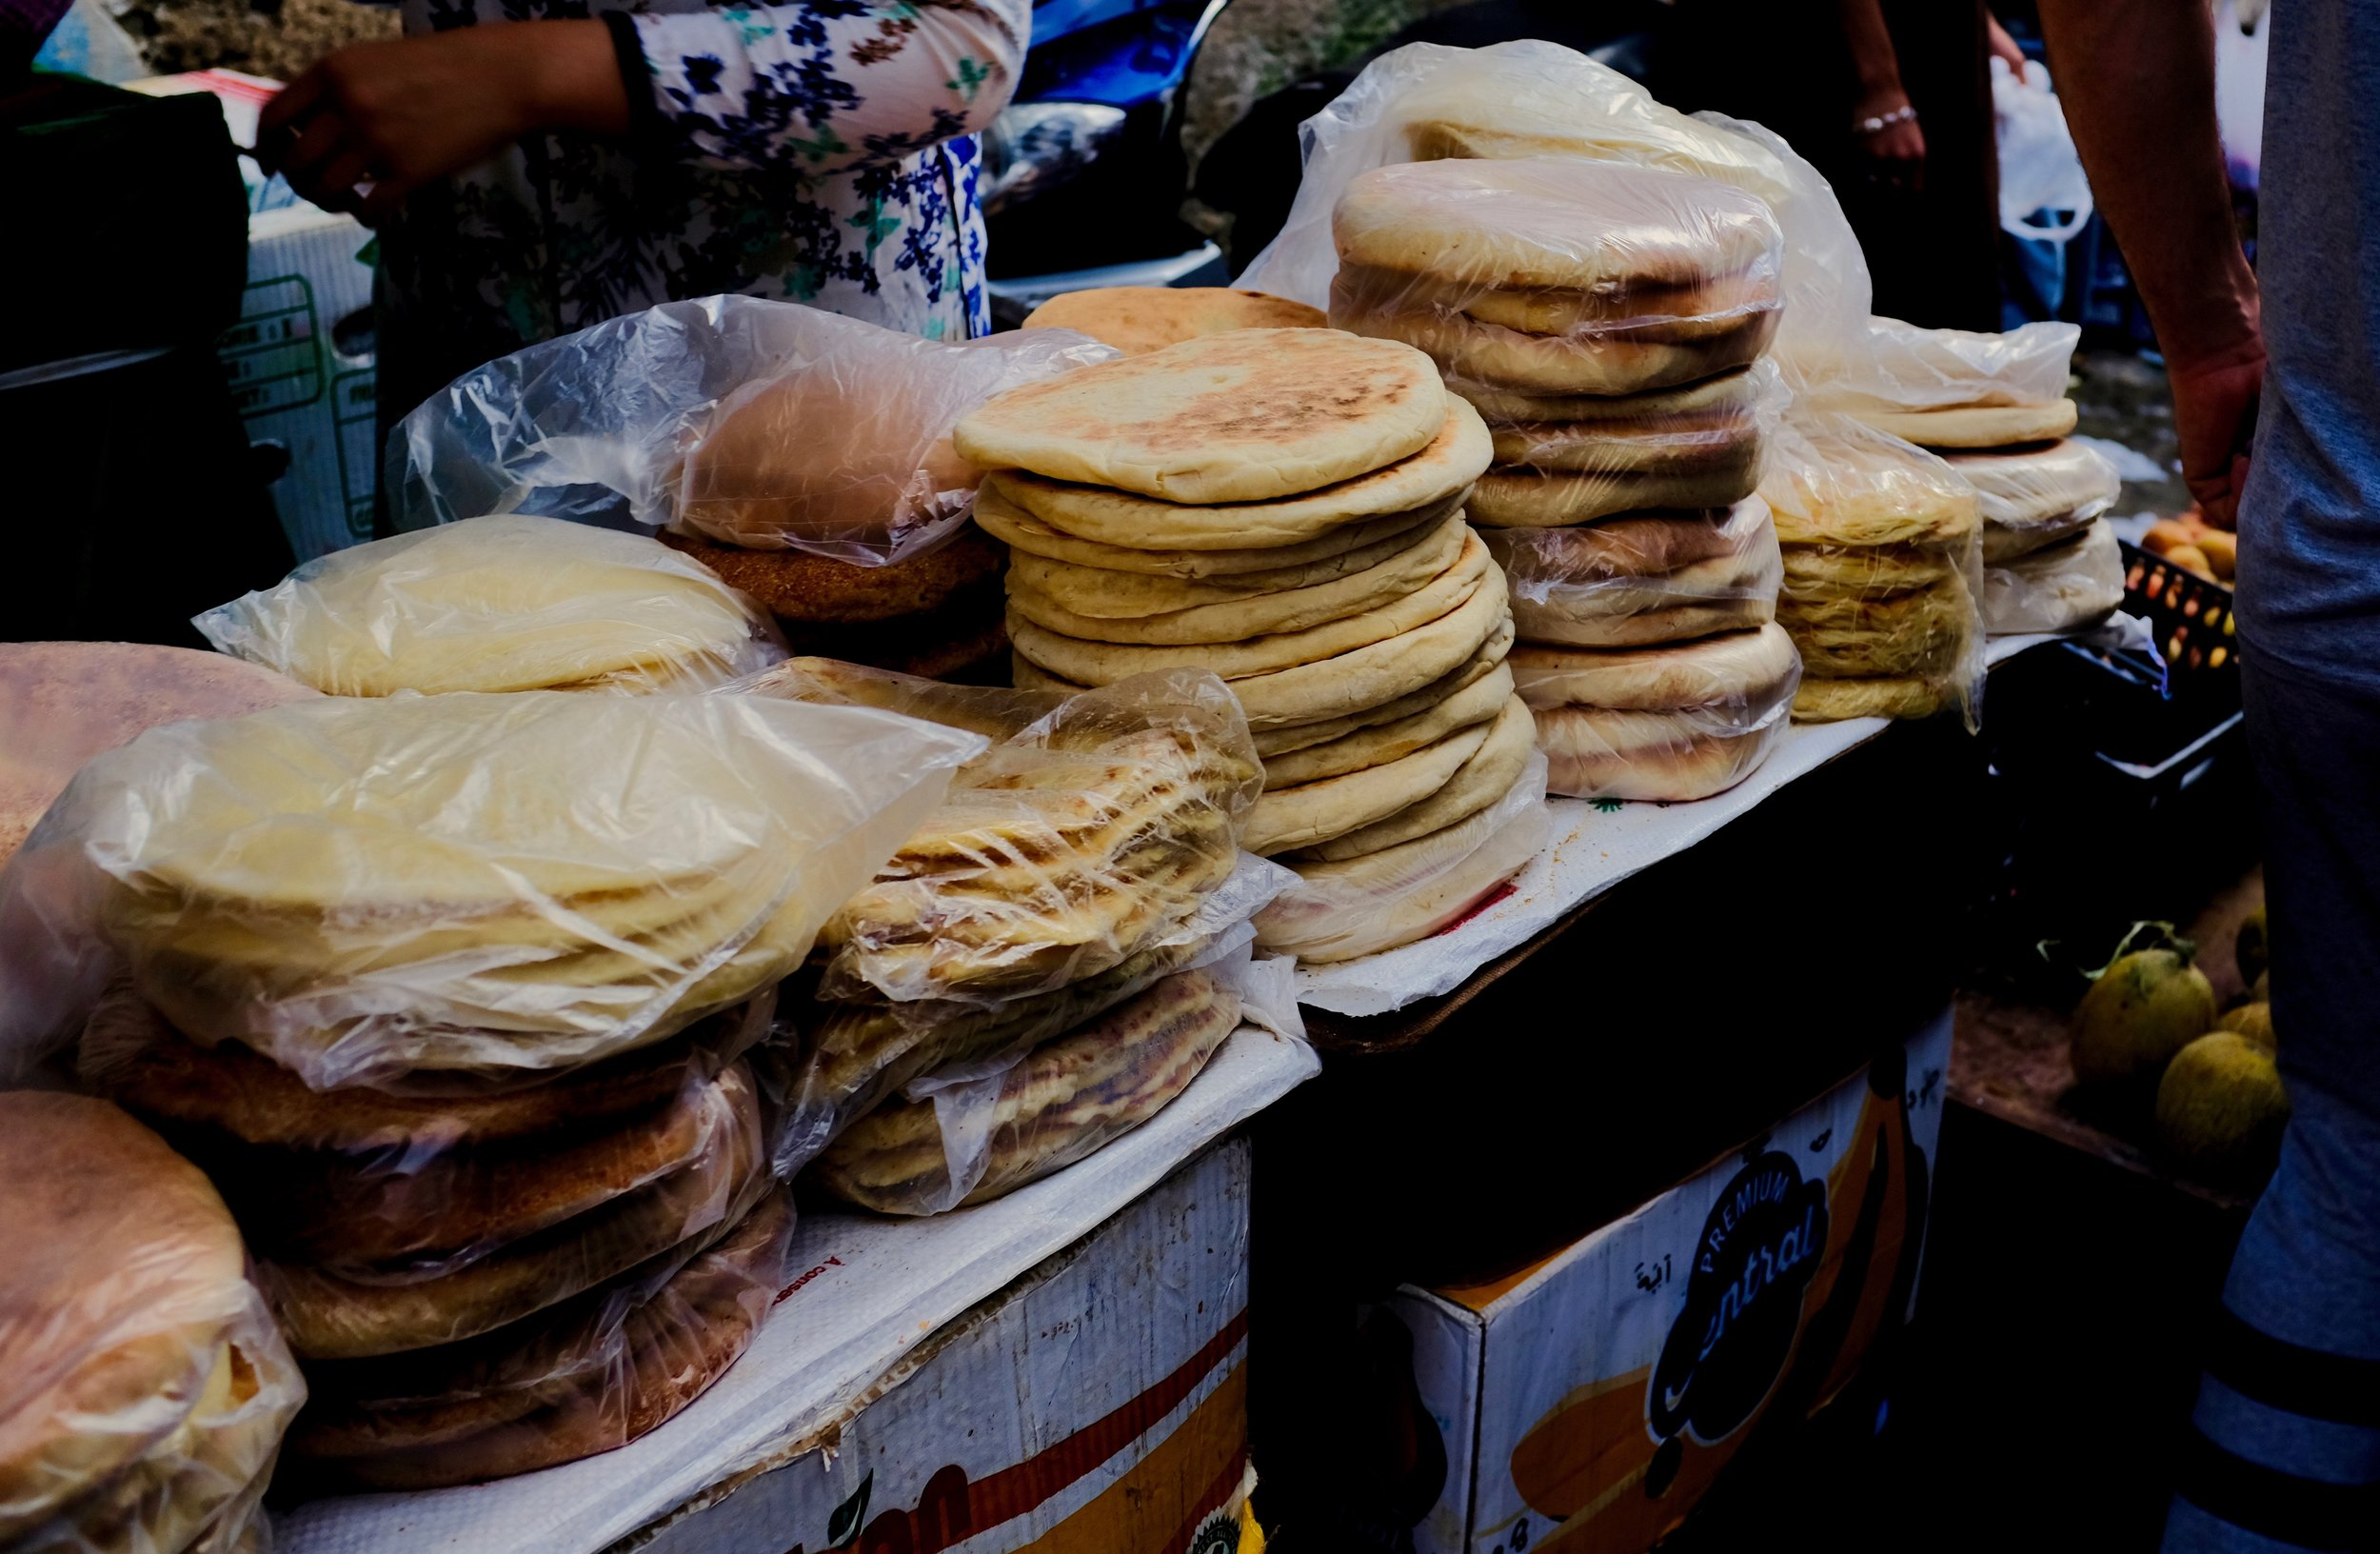 A variety of different Moroccan bread products being sold at a market in the medina of Fez, Morocco.